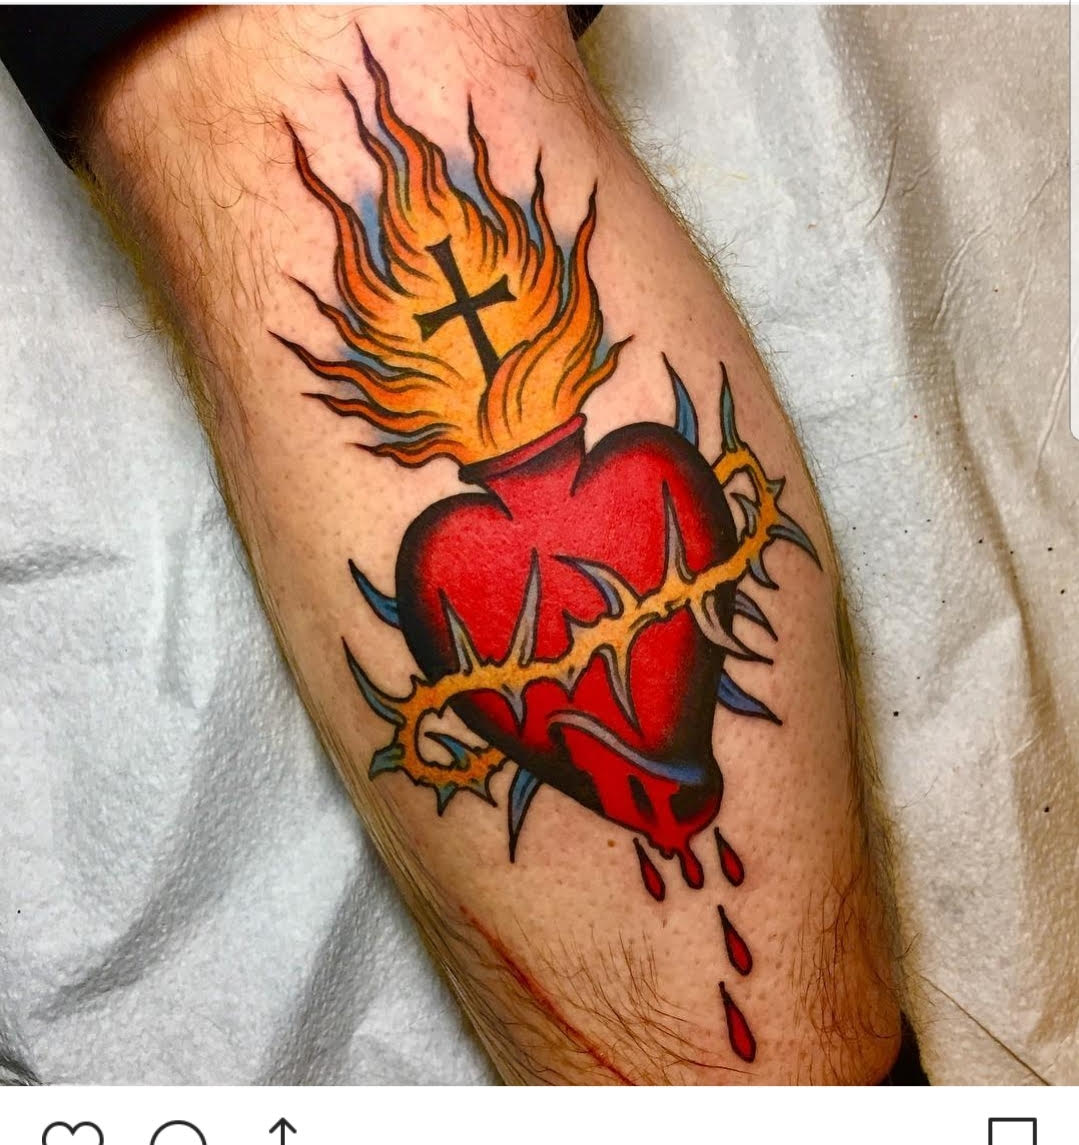 heart-with-thorns-tattoo-david-parker.jpg